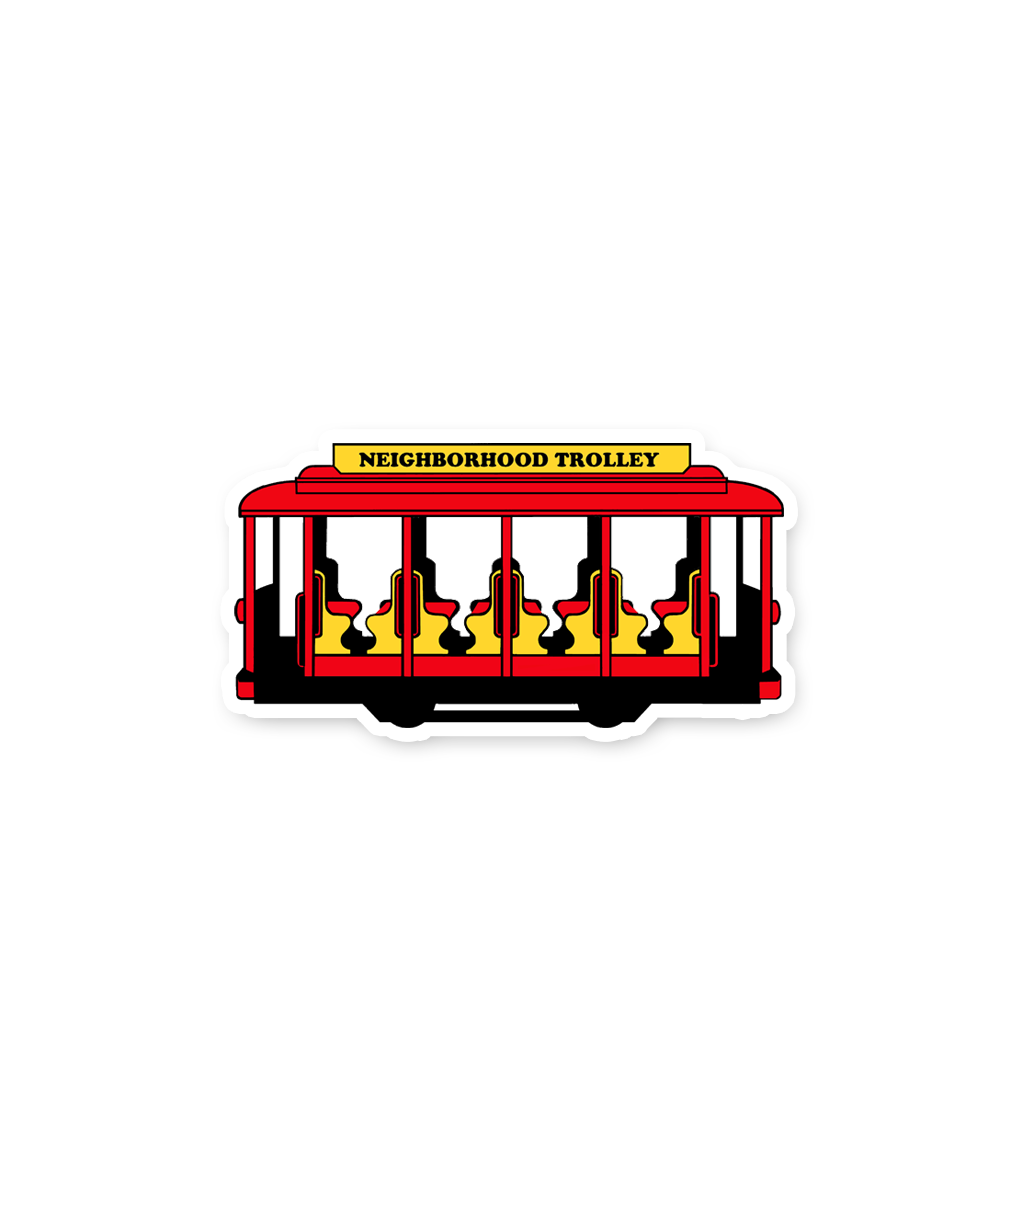 Trolley Sticker Mister Rogers Neighborhood Steel City Steel City Brand